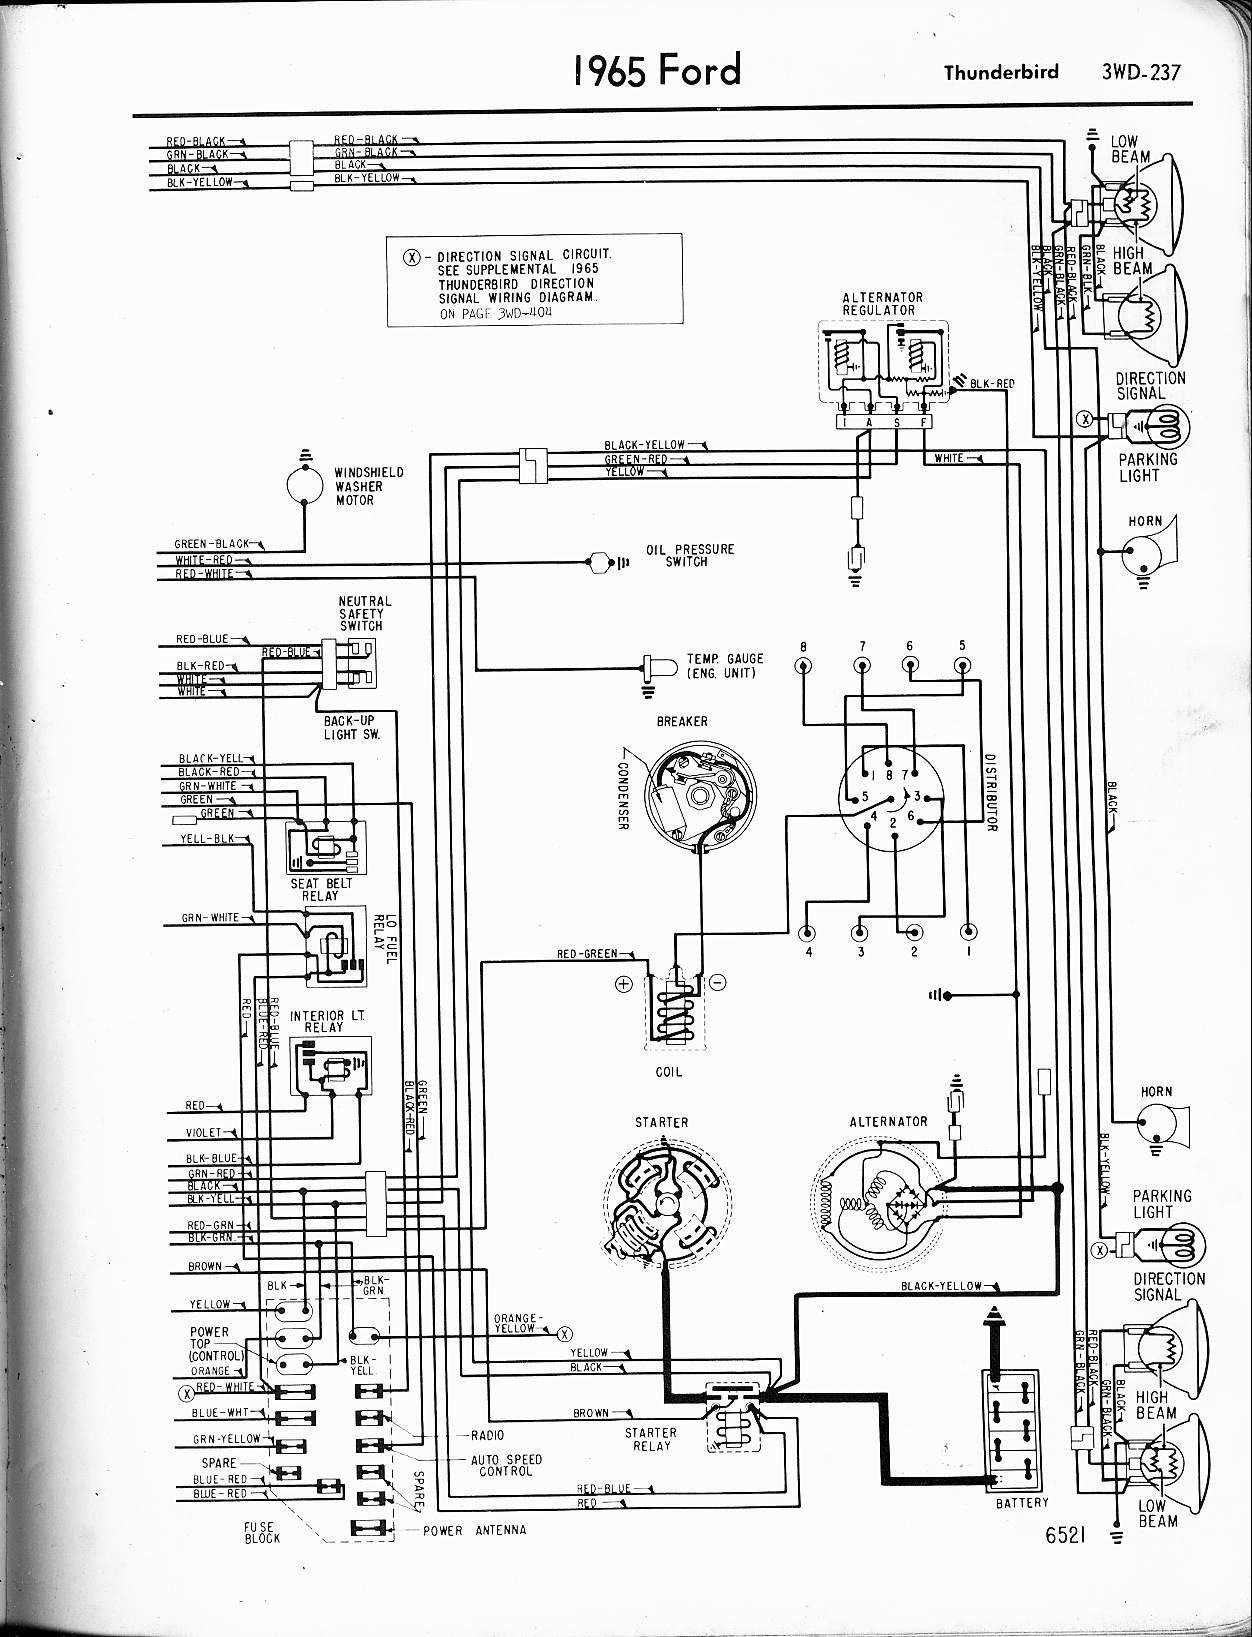 hight resolution of mazda b3000 engine diagram ford econoline wiring diagram also 1966 ford thunderbird wiring of mazda b3000